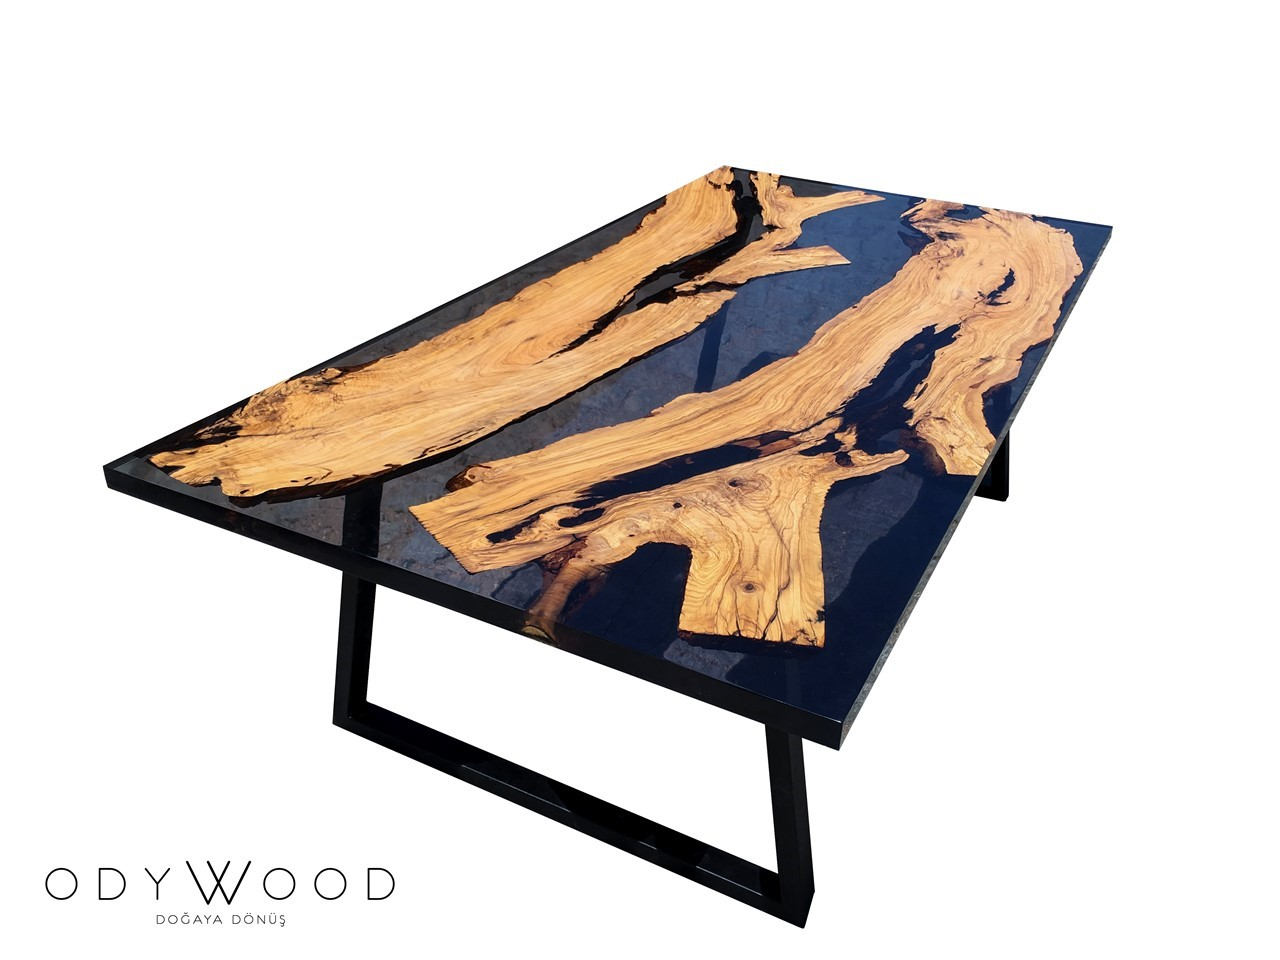 Transparent Black Epoxy Resin Dining Table'in resmi